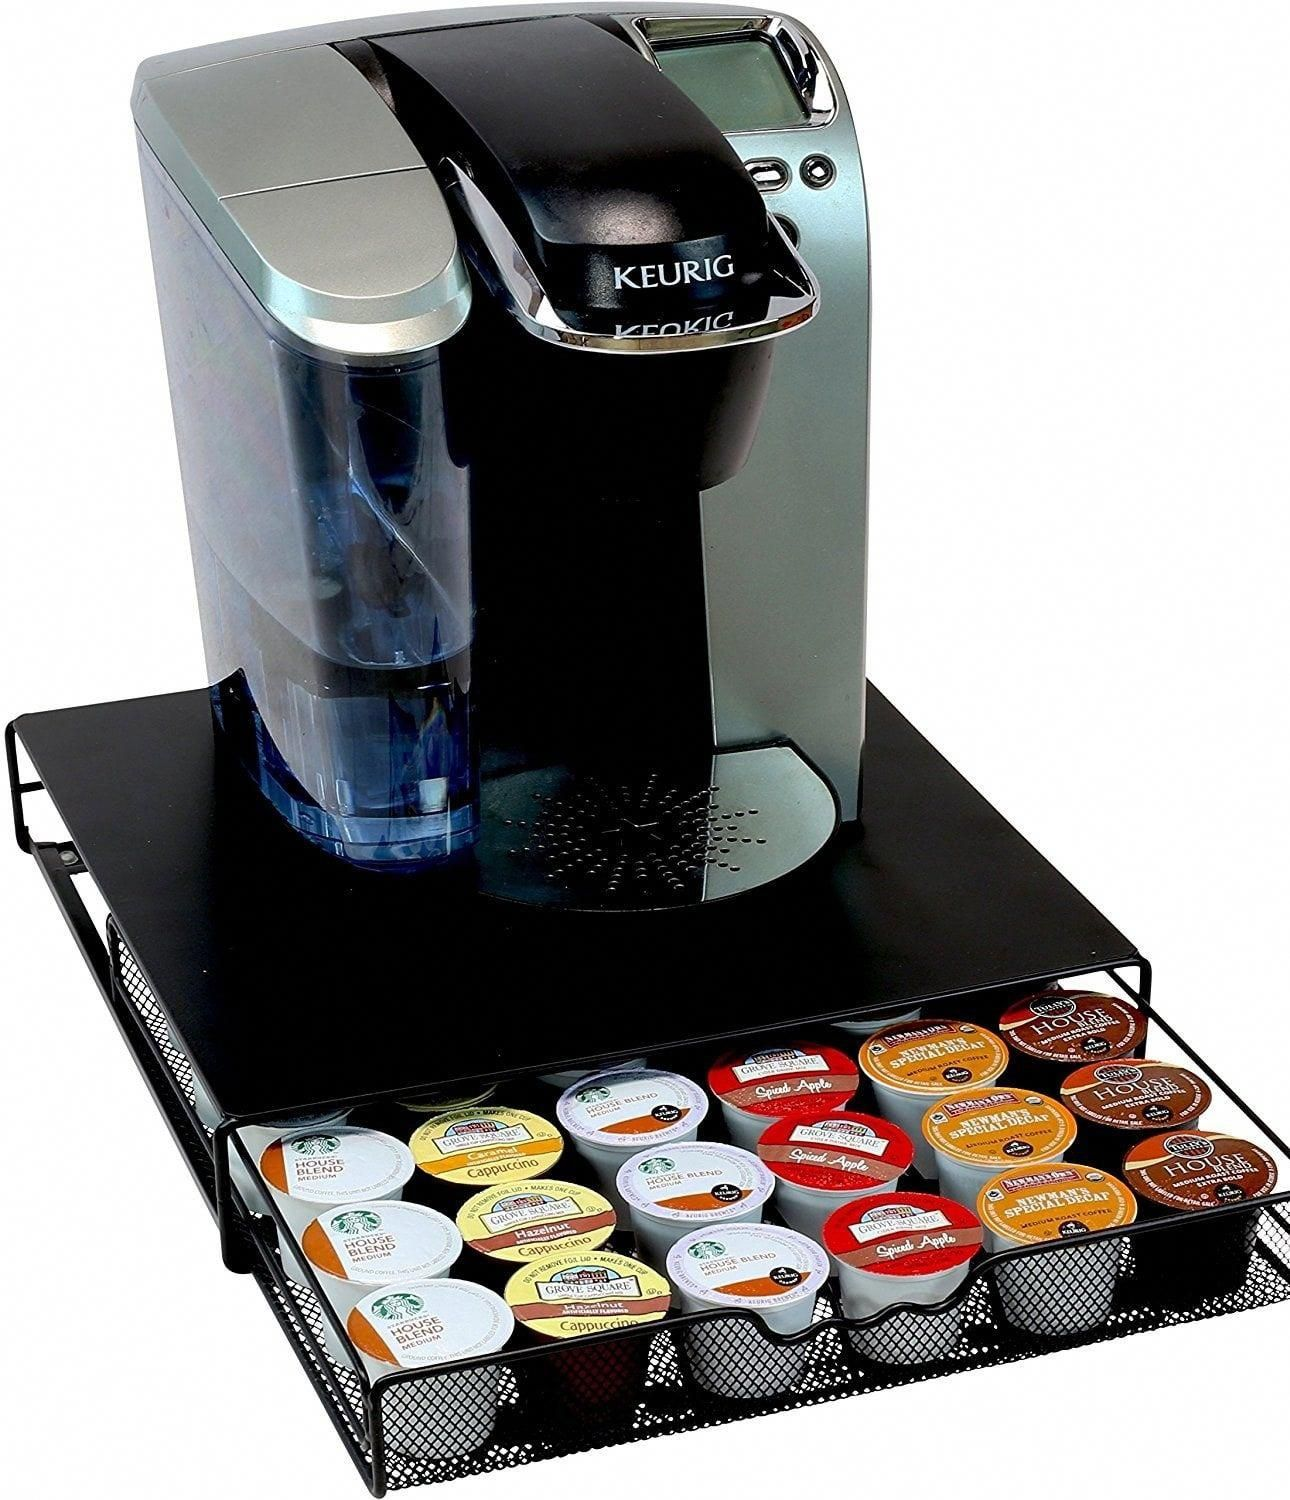 The Tray Slides Easily In And Out Even With Weight Of Keurig Filled Water Another Coffee Pot